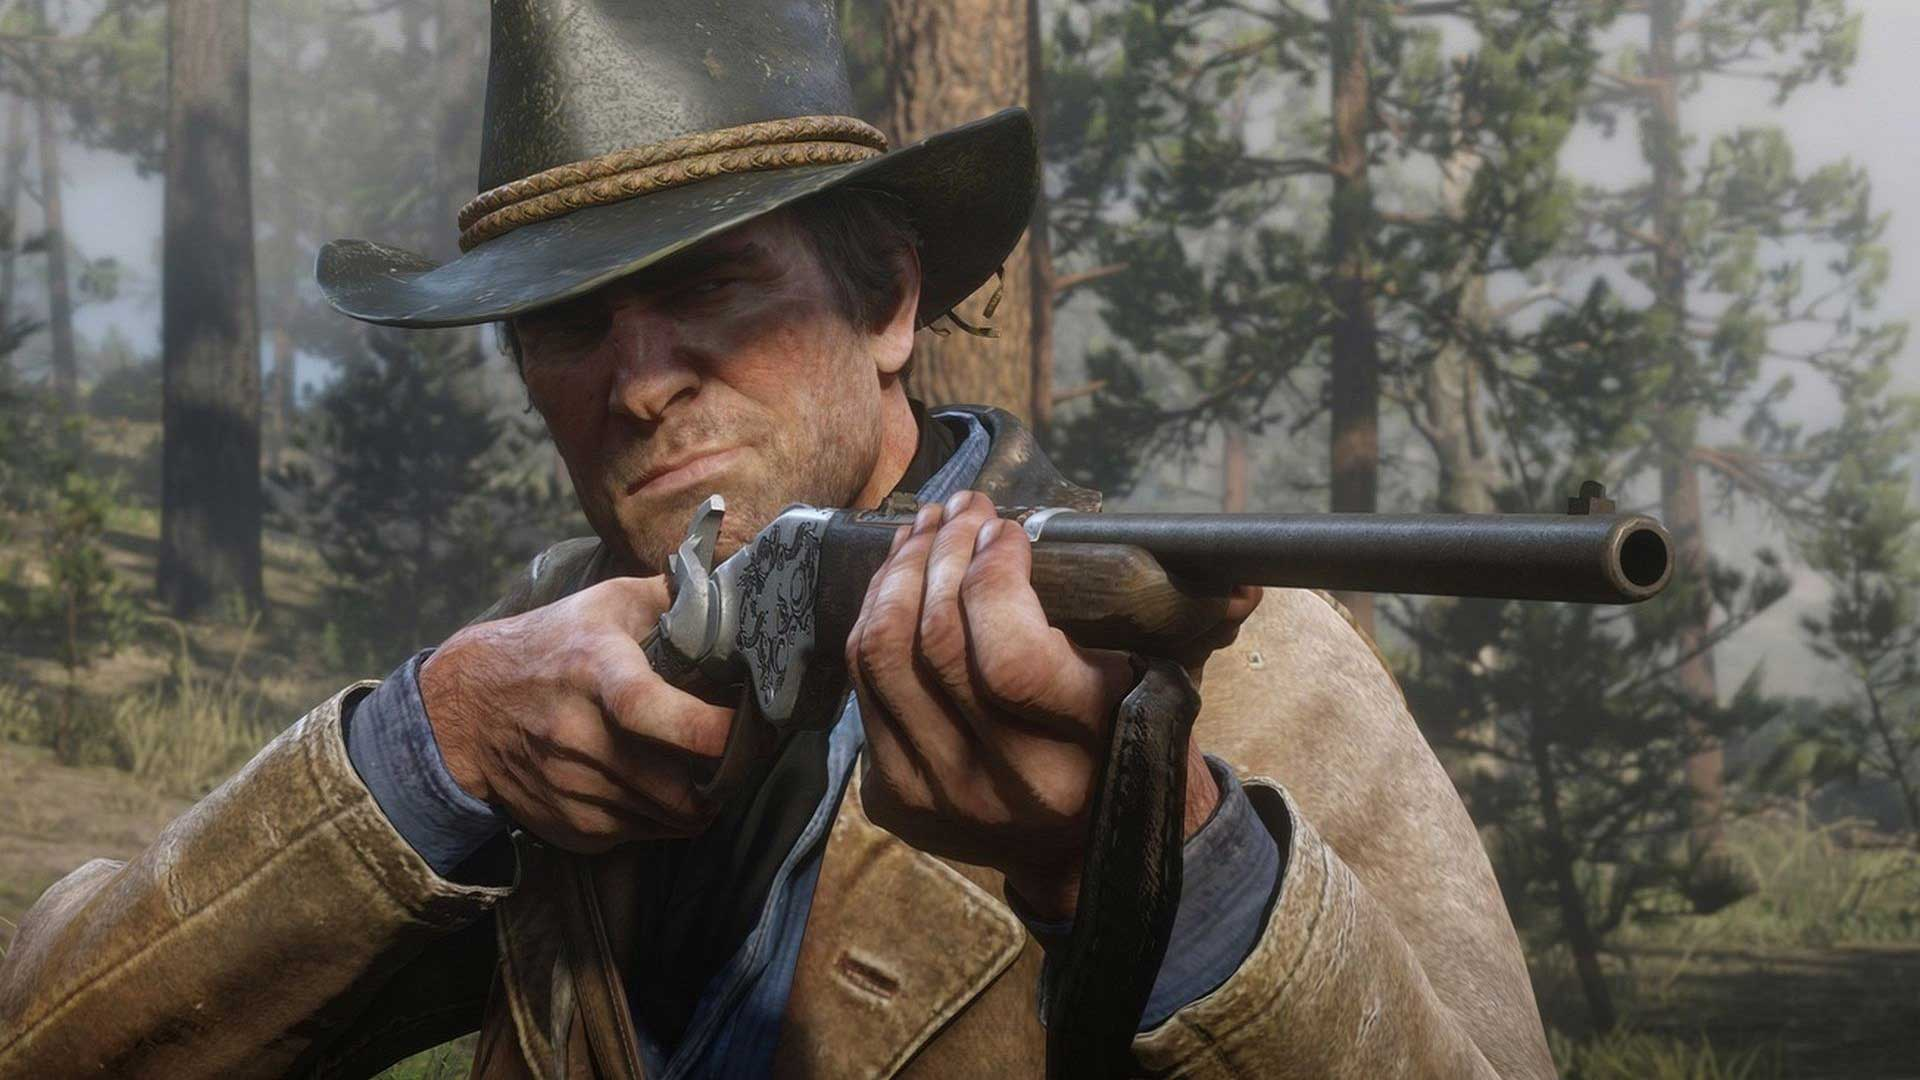 Castores Red Dead Redemption 2